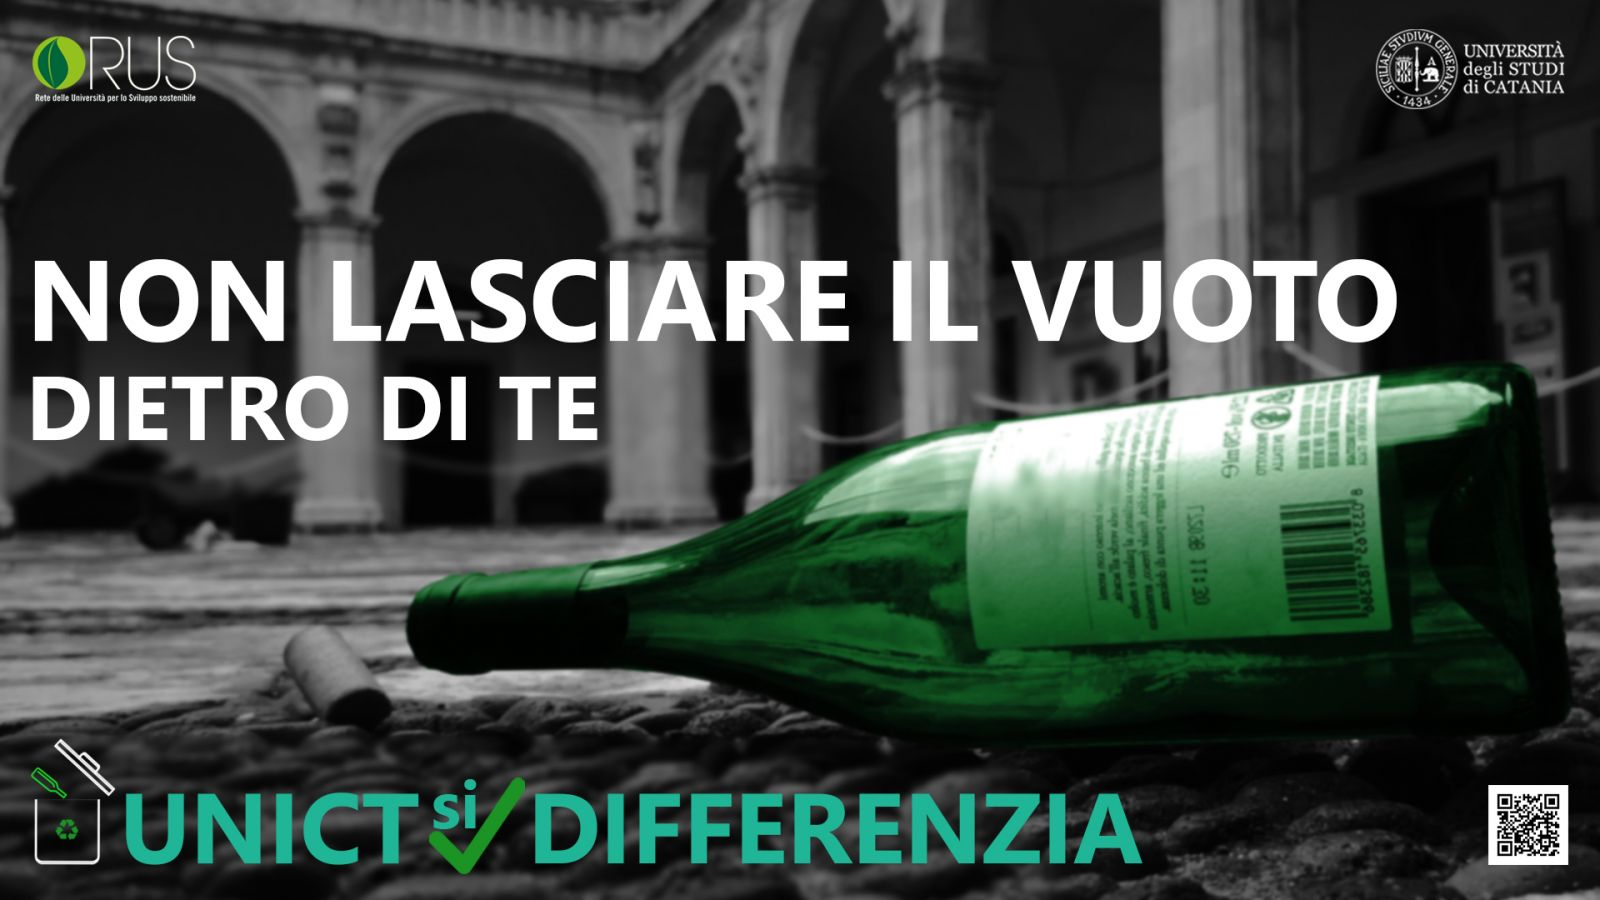 unict si differenzia - vetro